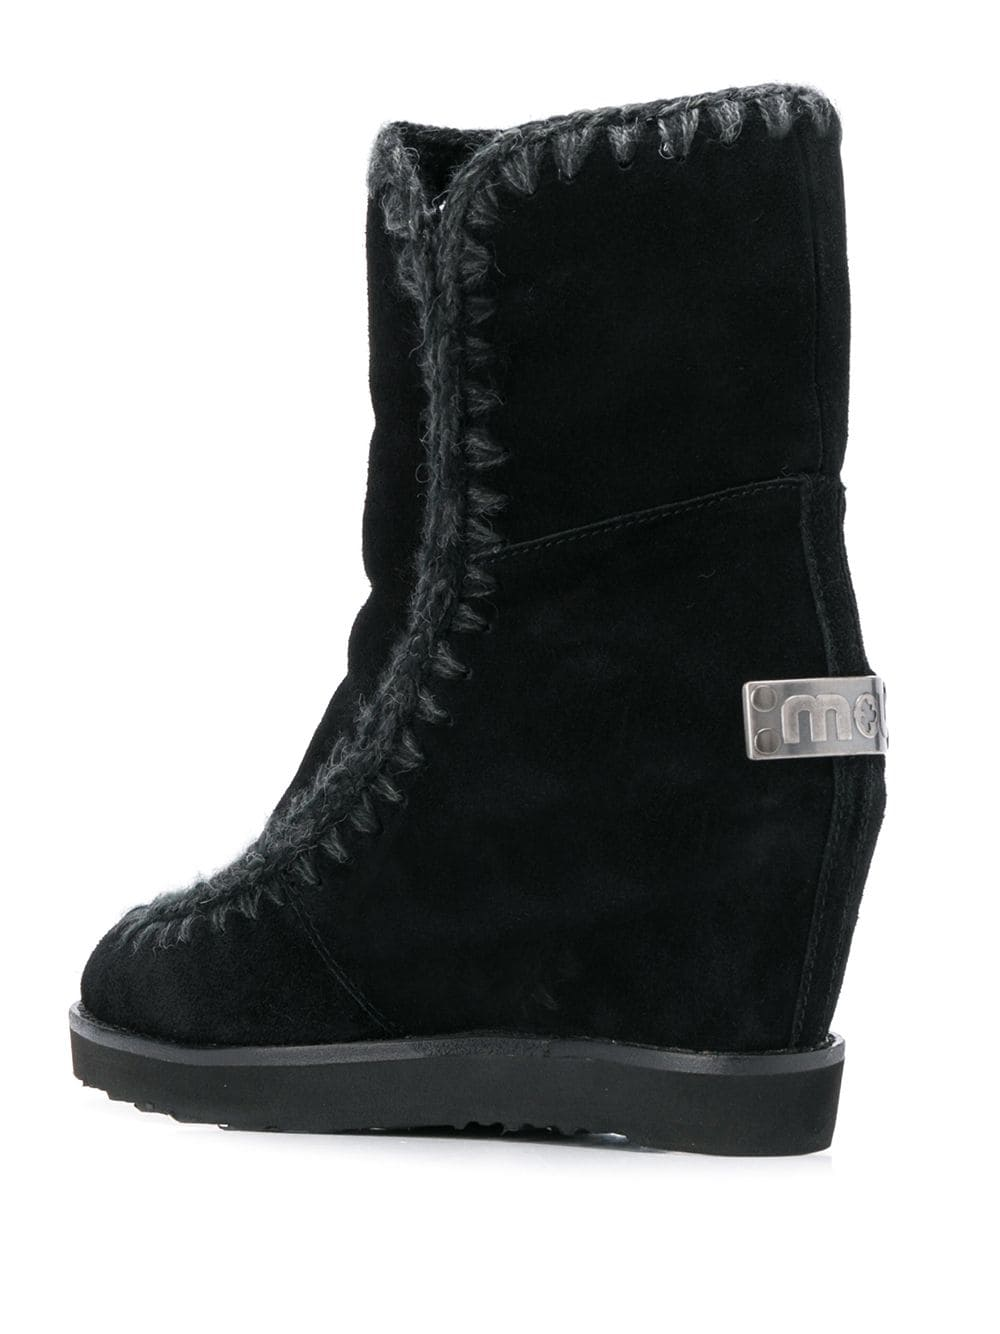 Mou French Toe Wedge Short boots - Black